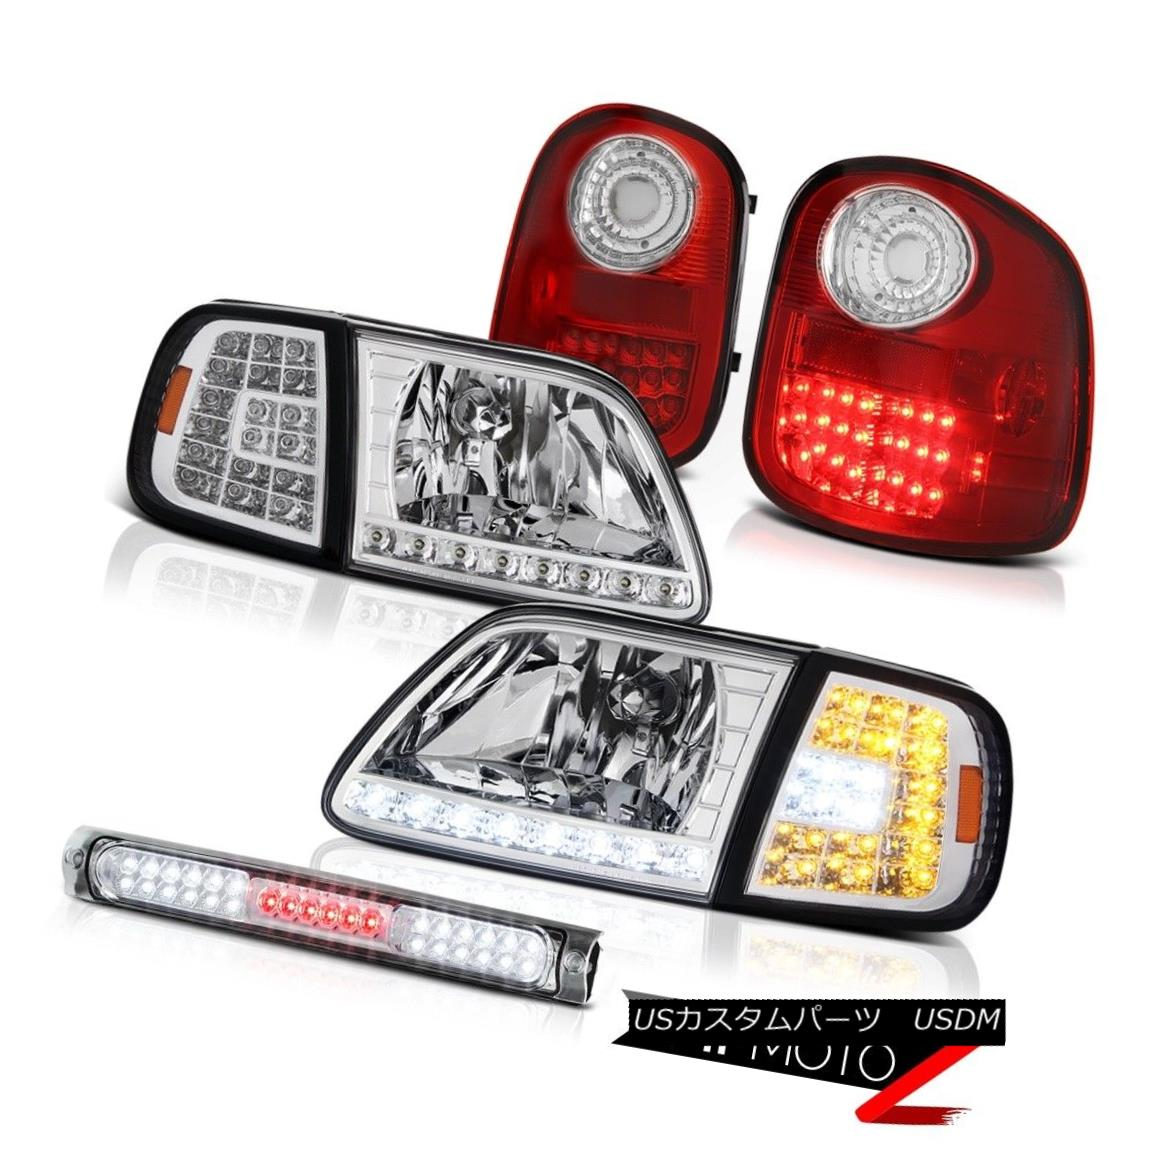 ヘッドライト 97-03 F150 Flareside Hertiage LED Headlights Tail Light Assembly Roof Stop Clear 97-03 F150 Flareside Heritage LEDヘッドライトテールライトアセンブリルーフストップクリア